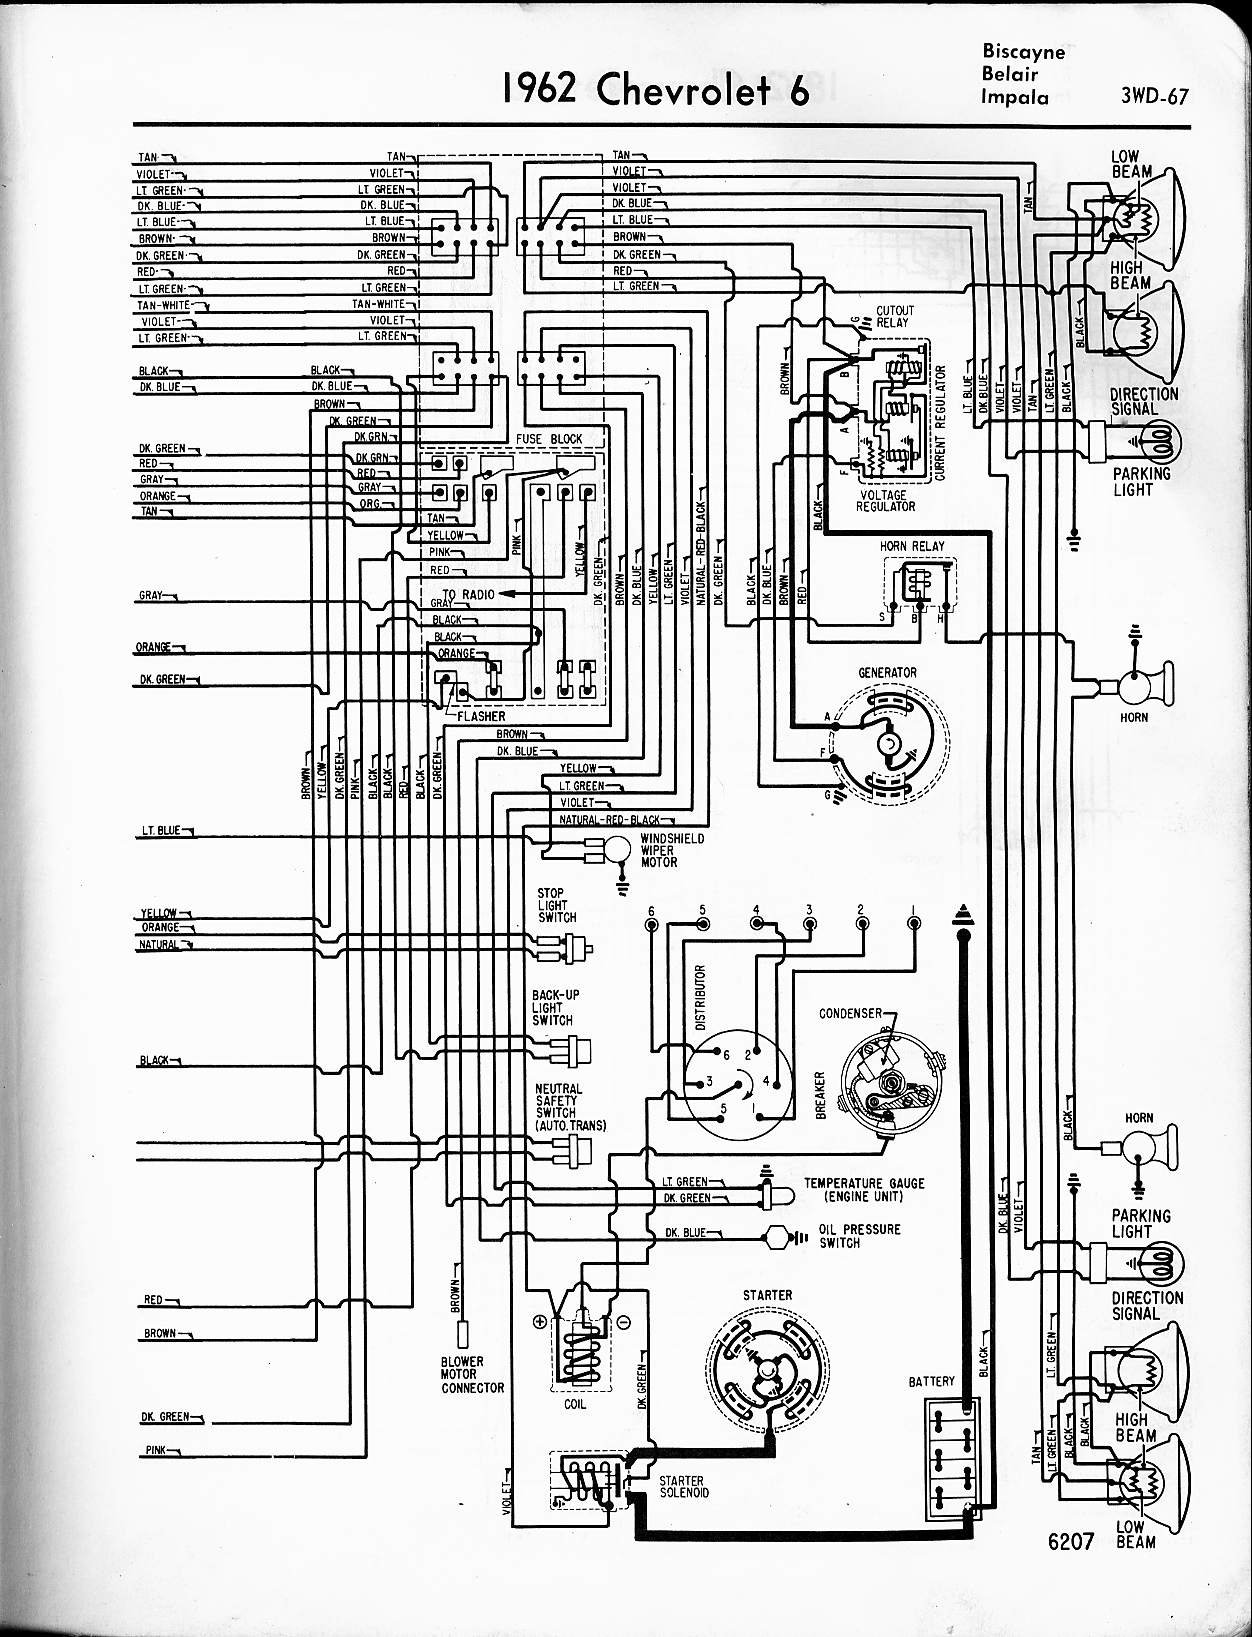 Jvc Subaru Wiring Harness : Jvc kd sr wiring harness diagram images